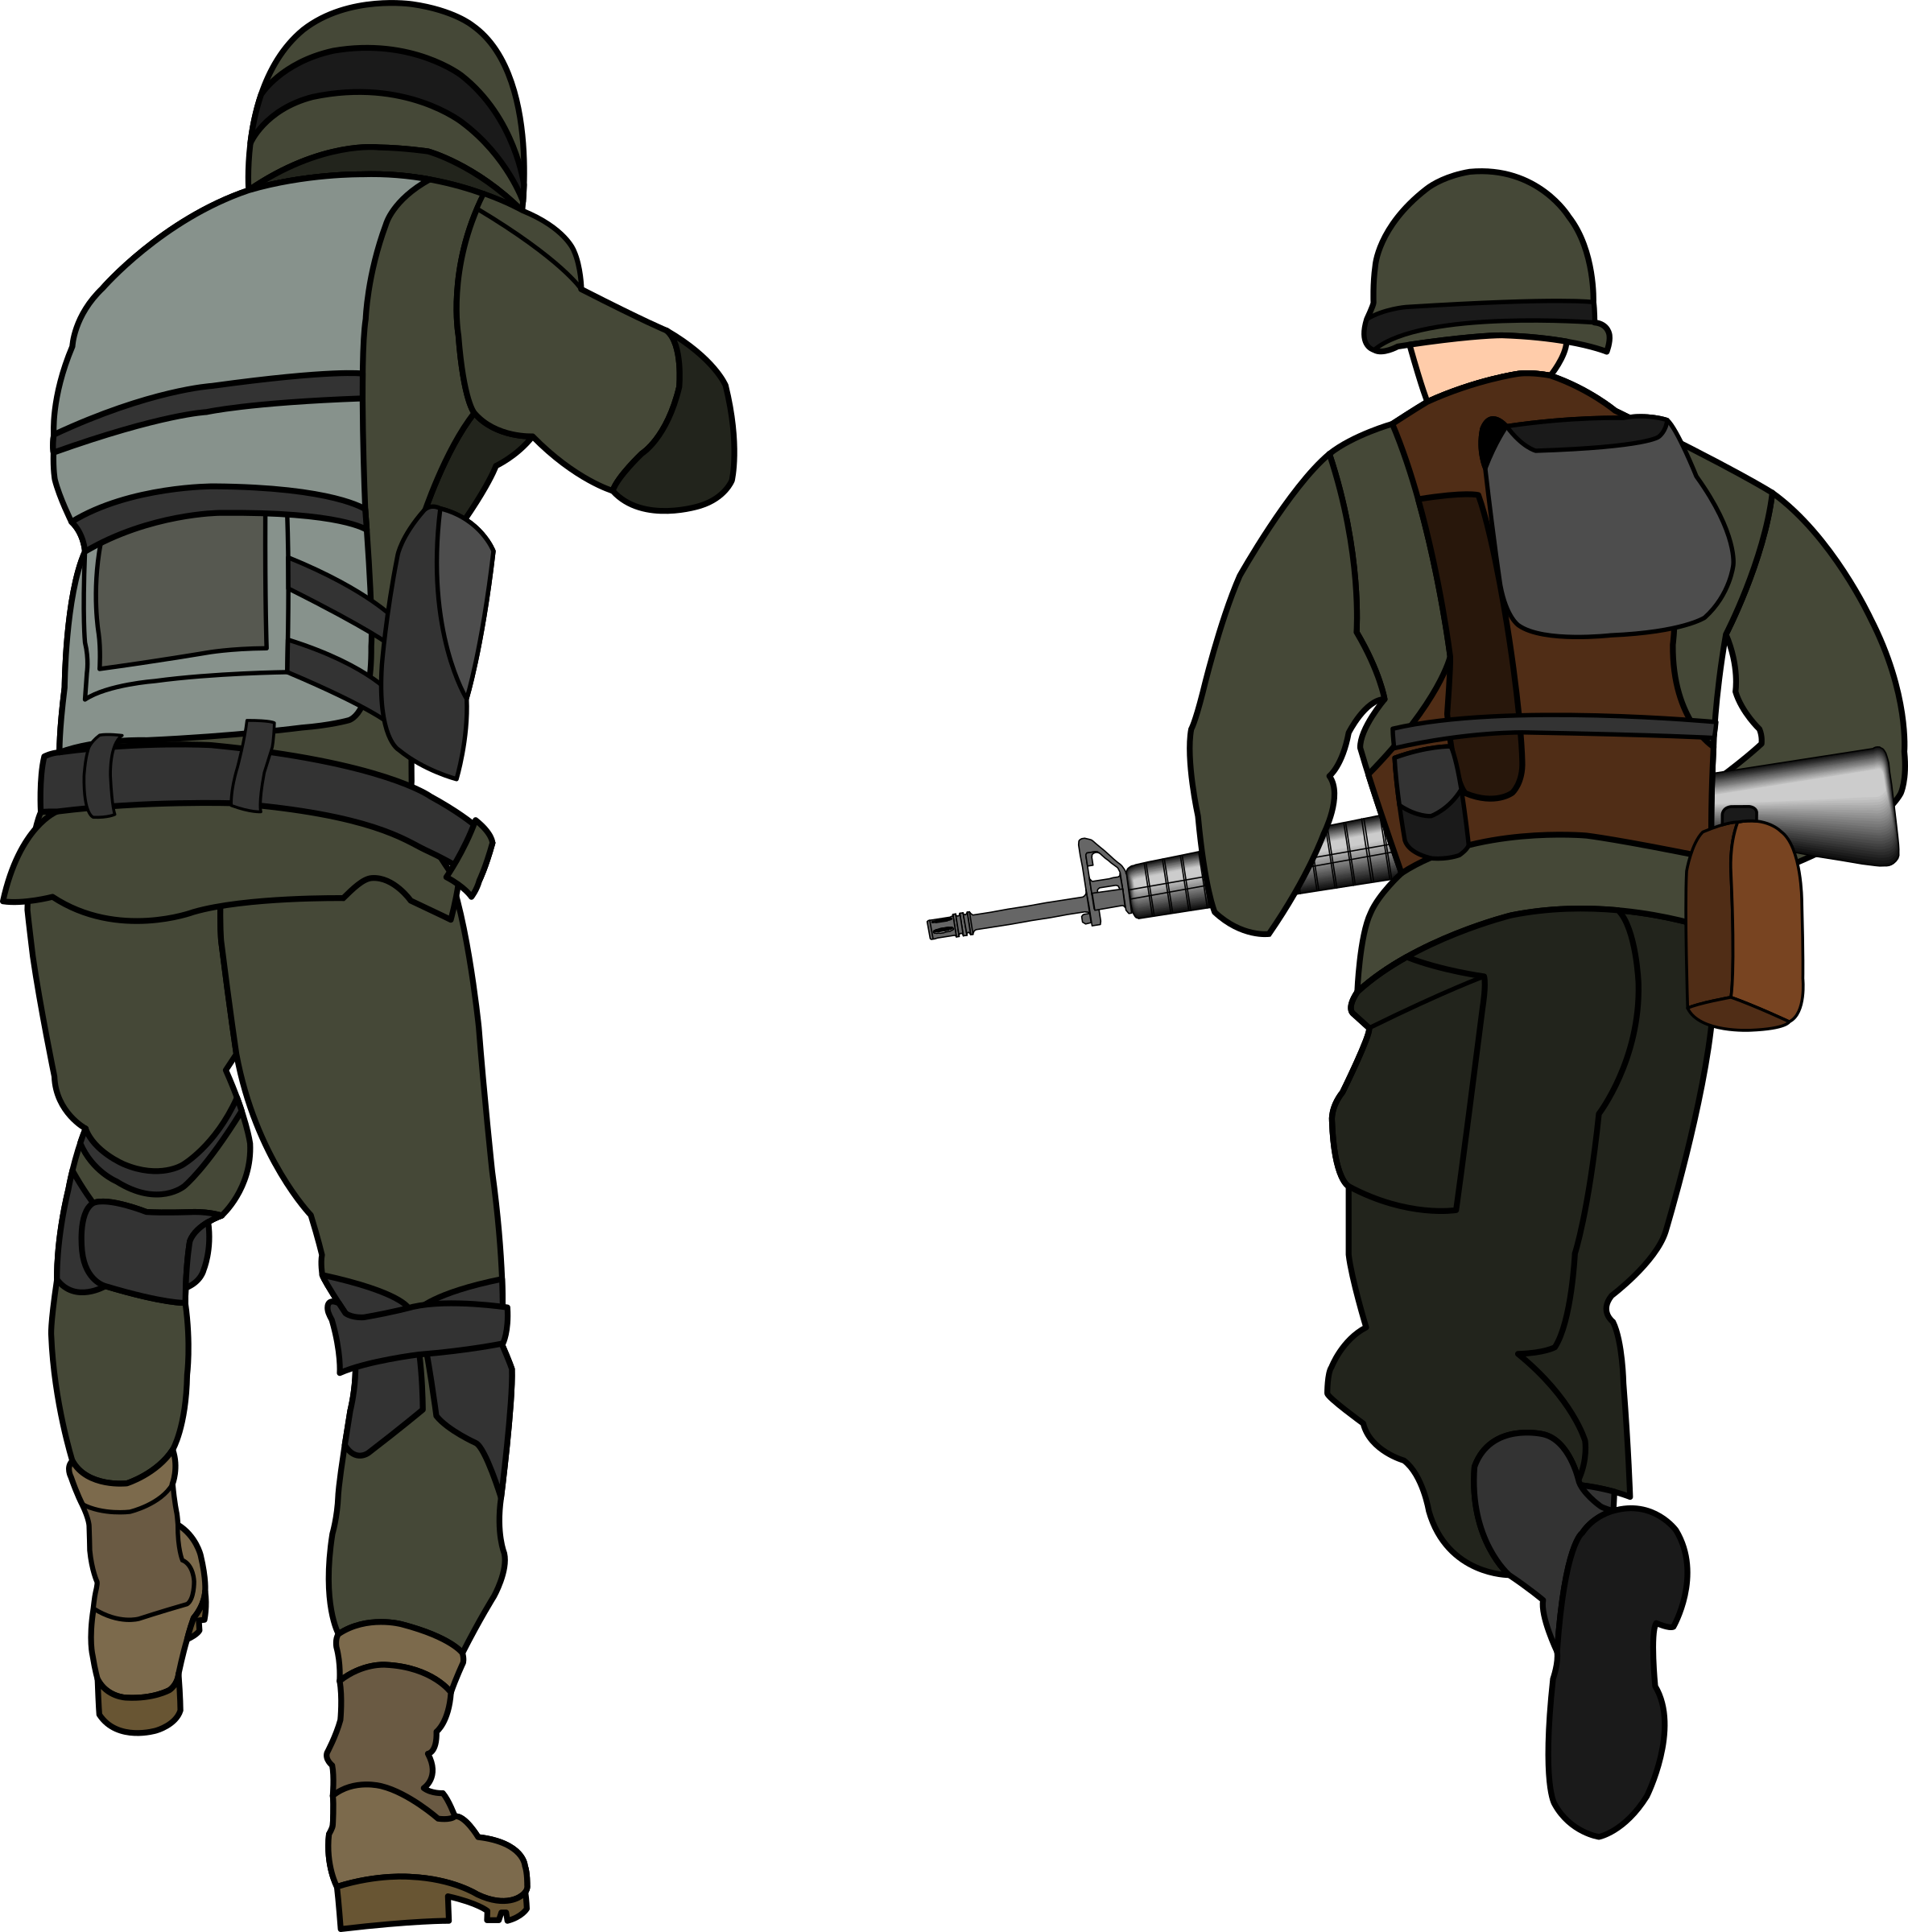 clip download Army soldier clipart. Soldiers charging rear view